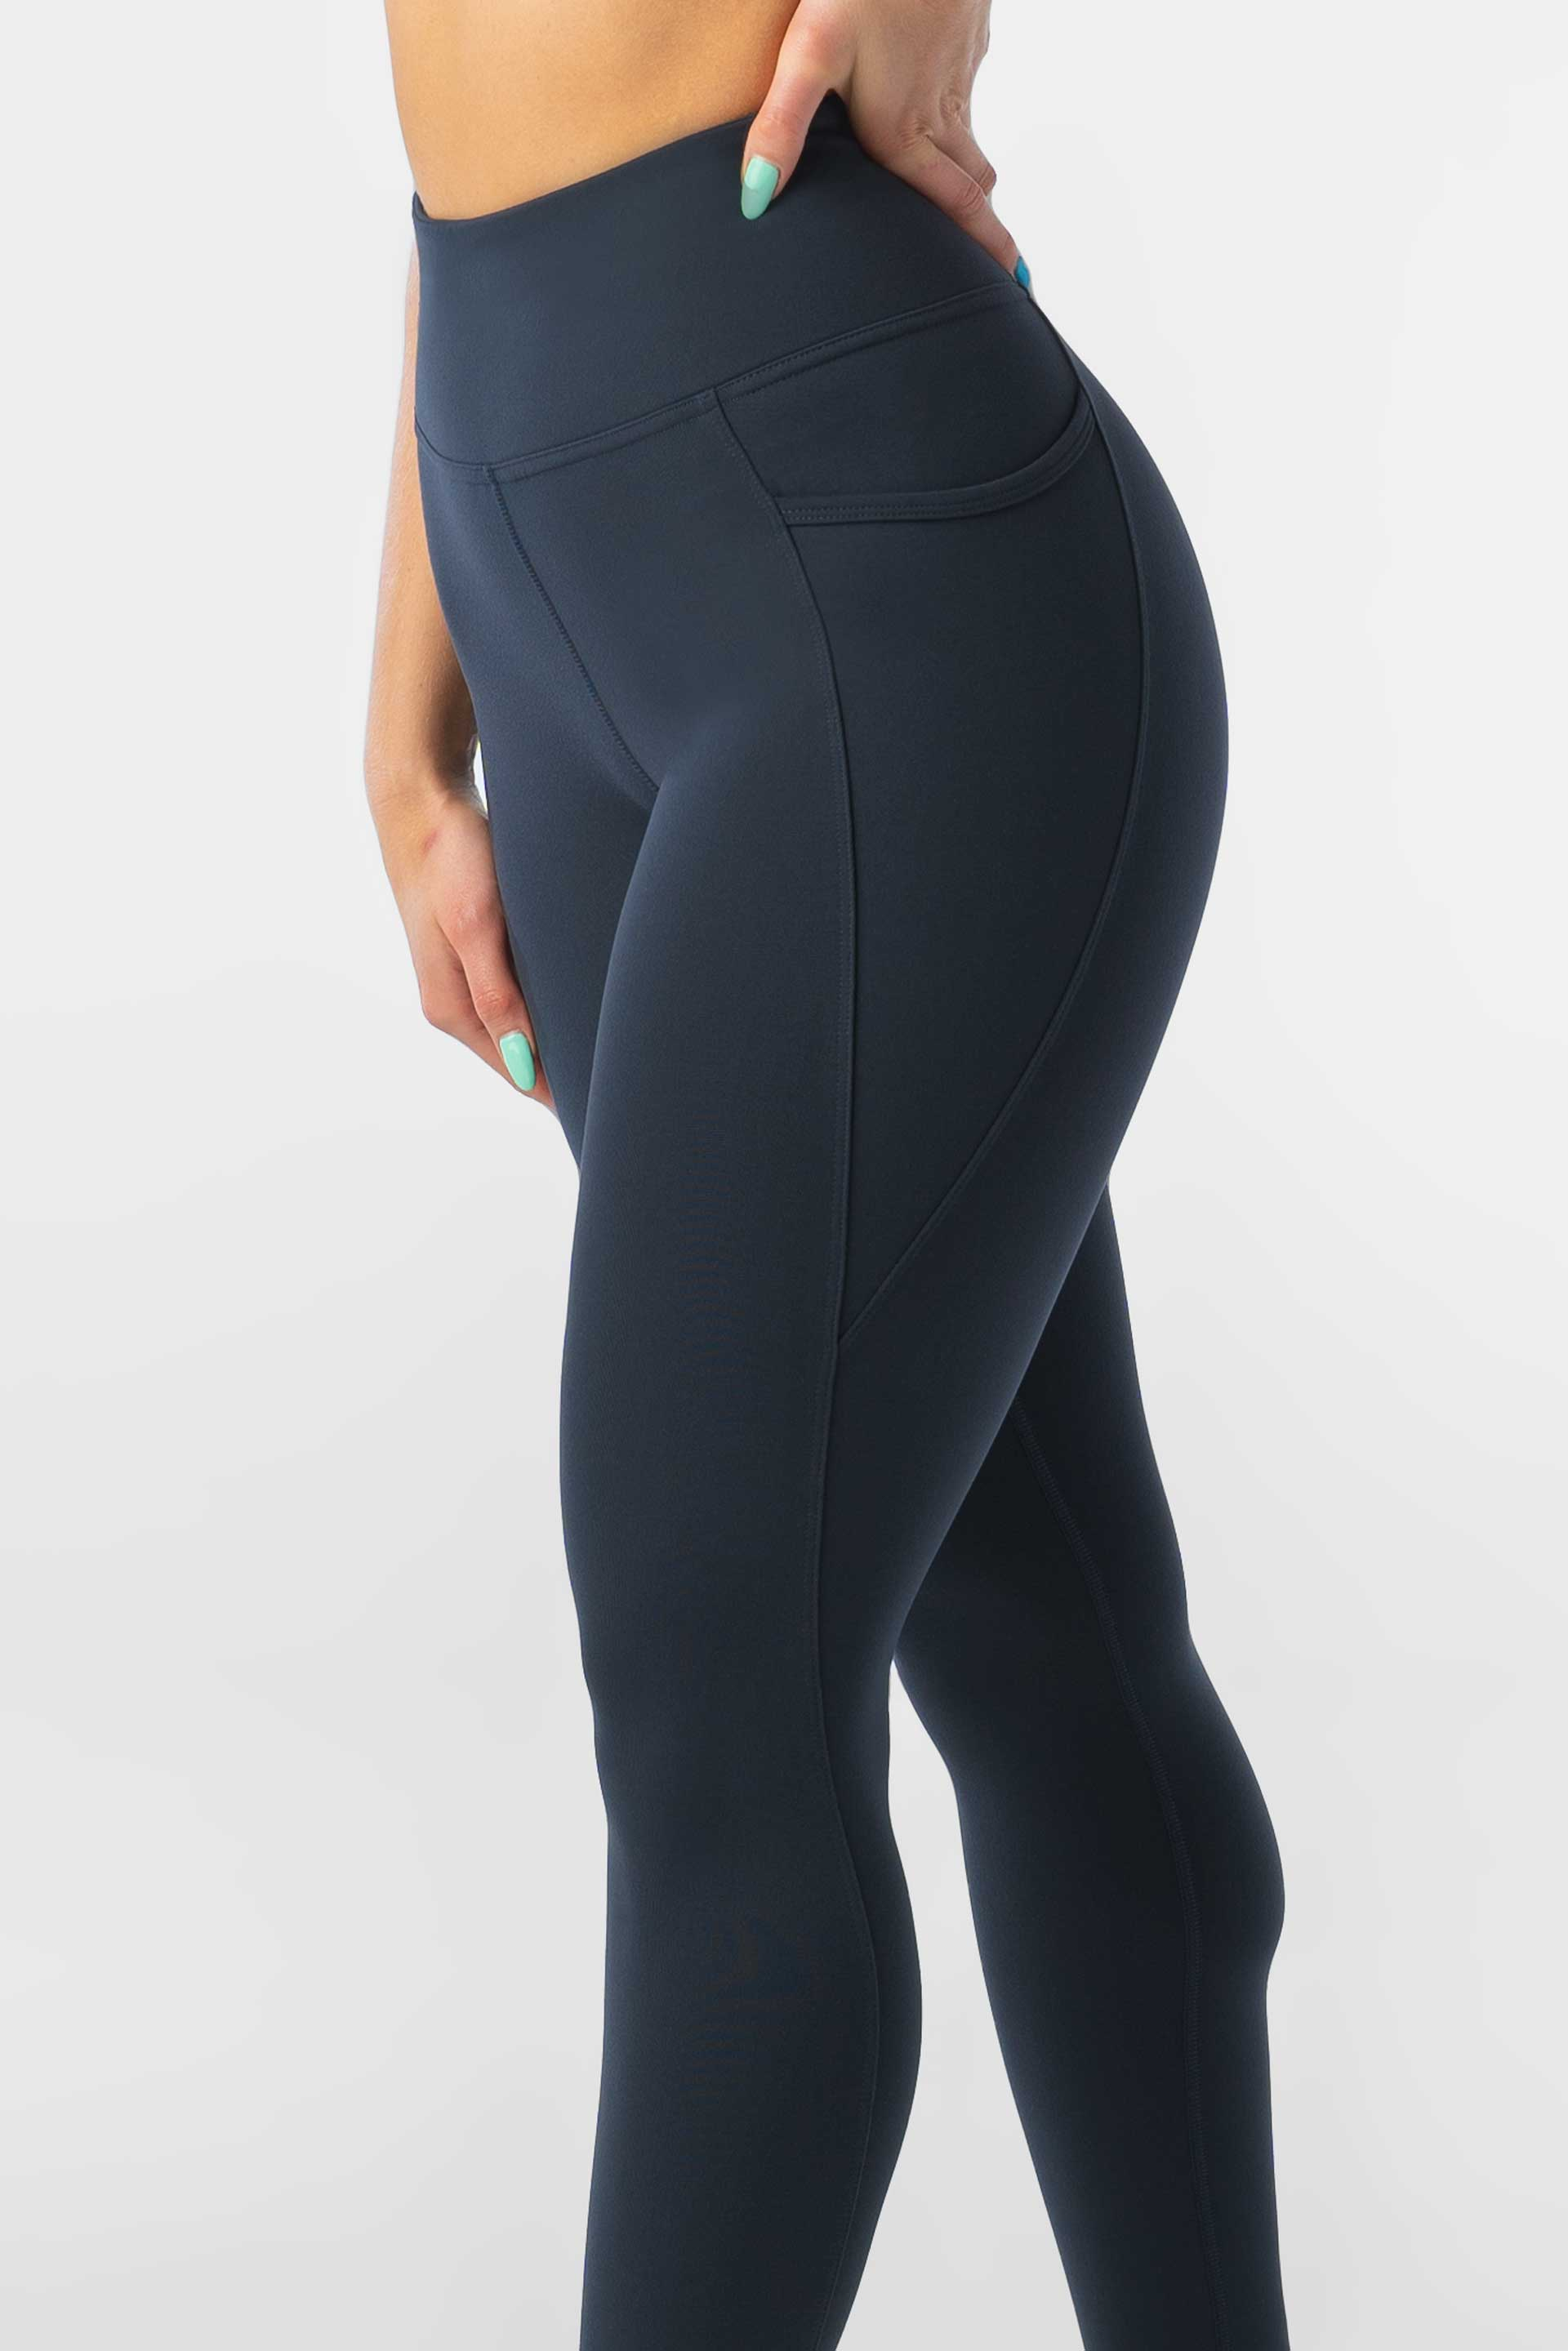 HIGH WAISTED SIDE POCKET 7/8 TIGHT - NAVY